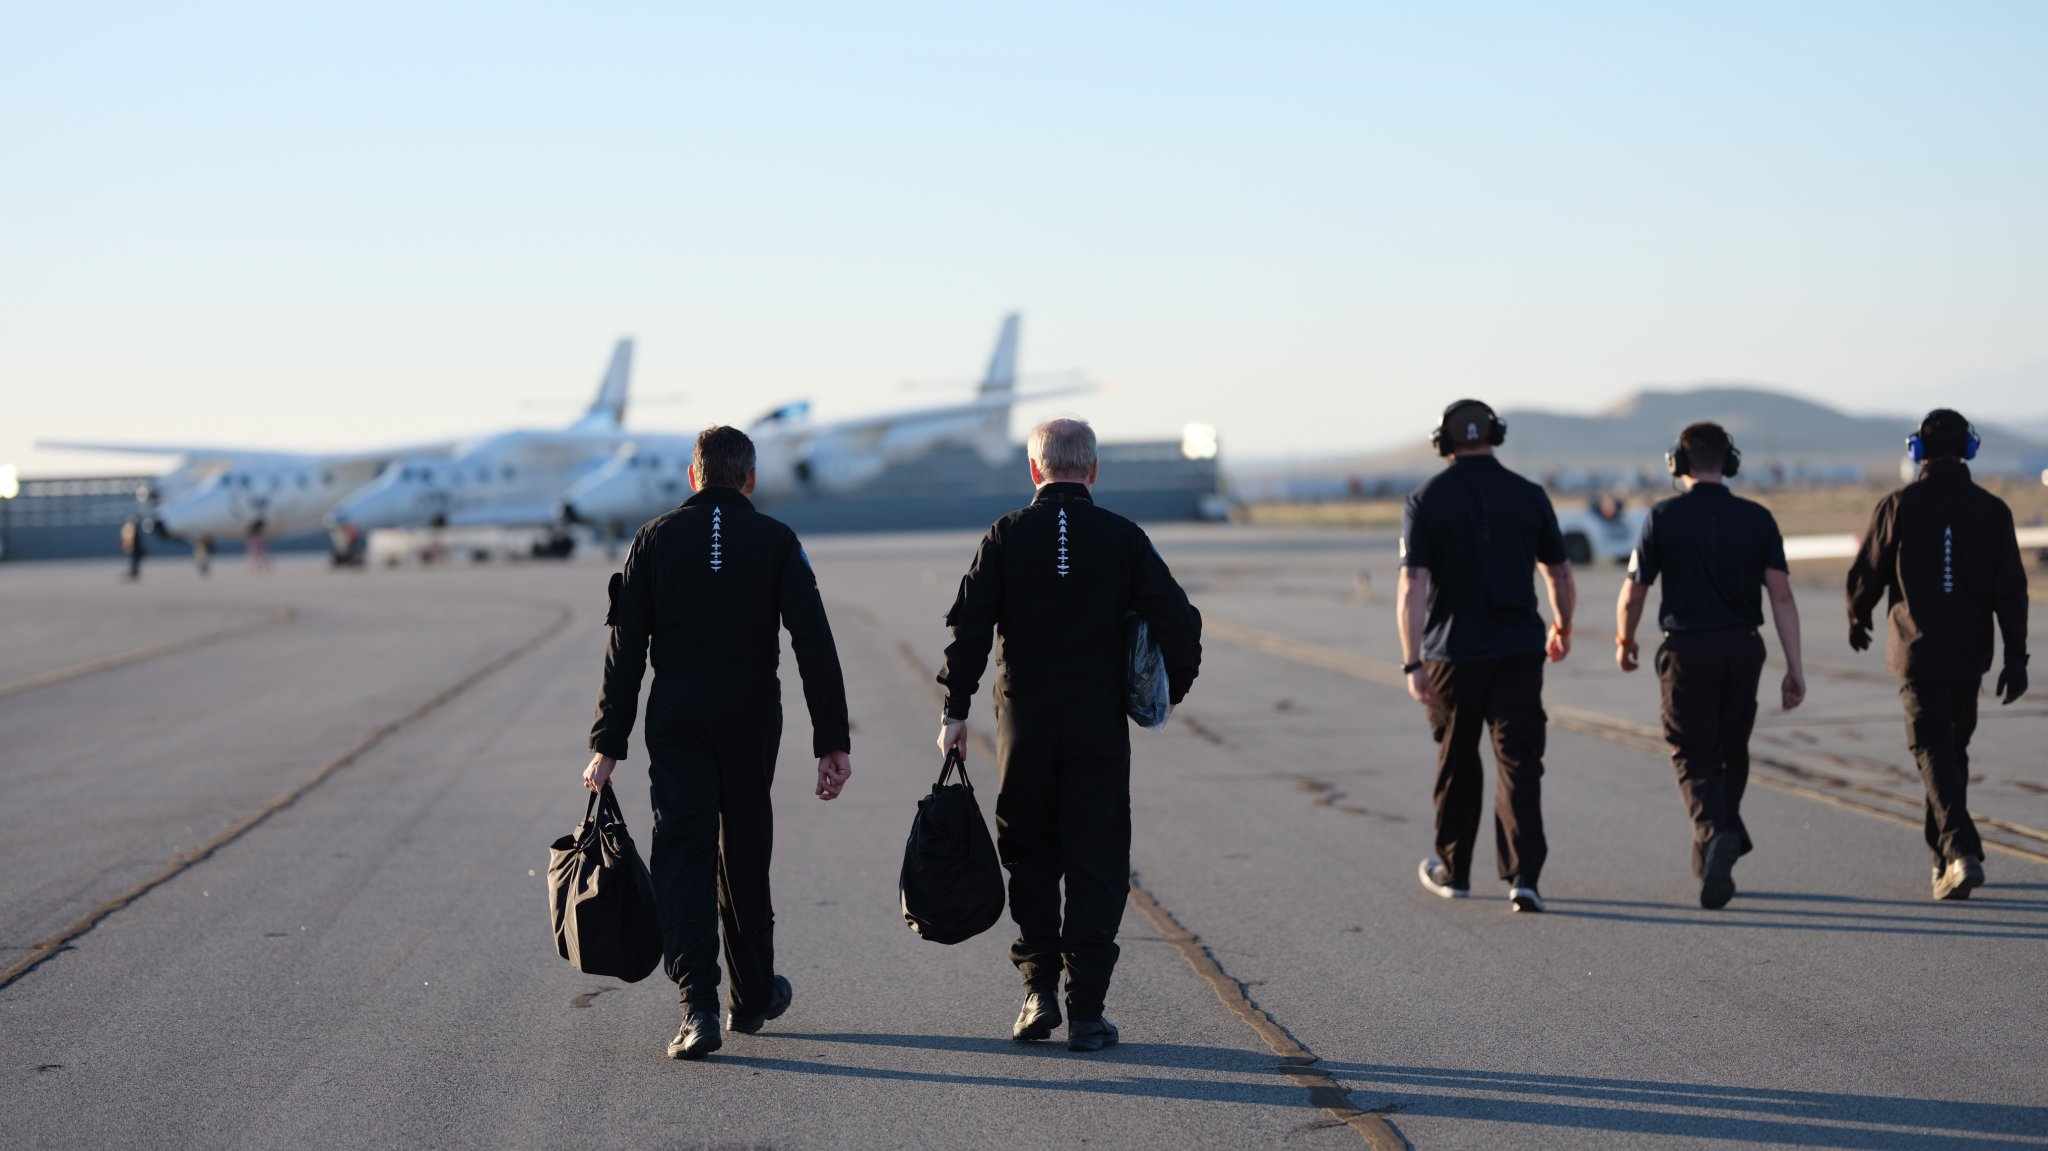 Virgin Galactic test pilots headed for the VSS Unity.